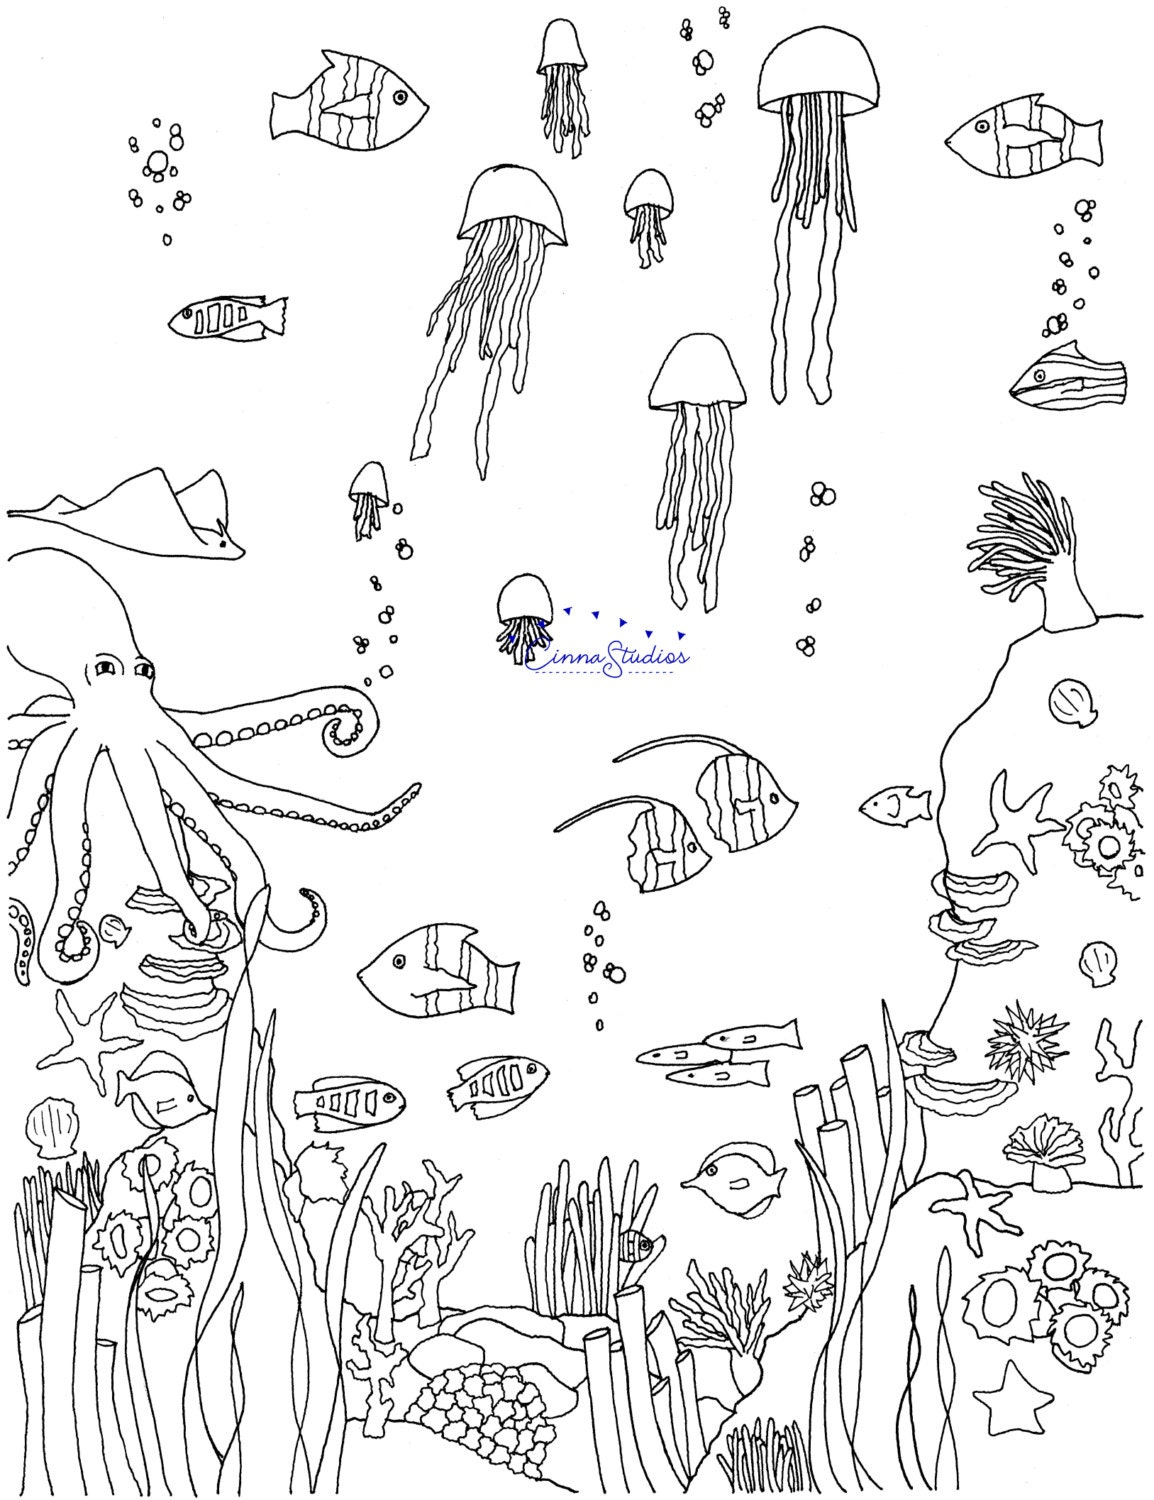 ocean i coloring page coloring download printable page